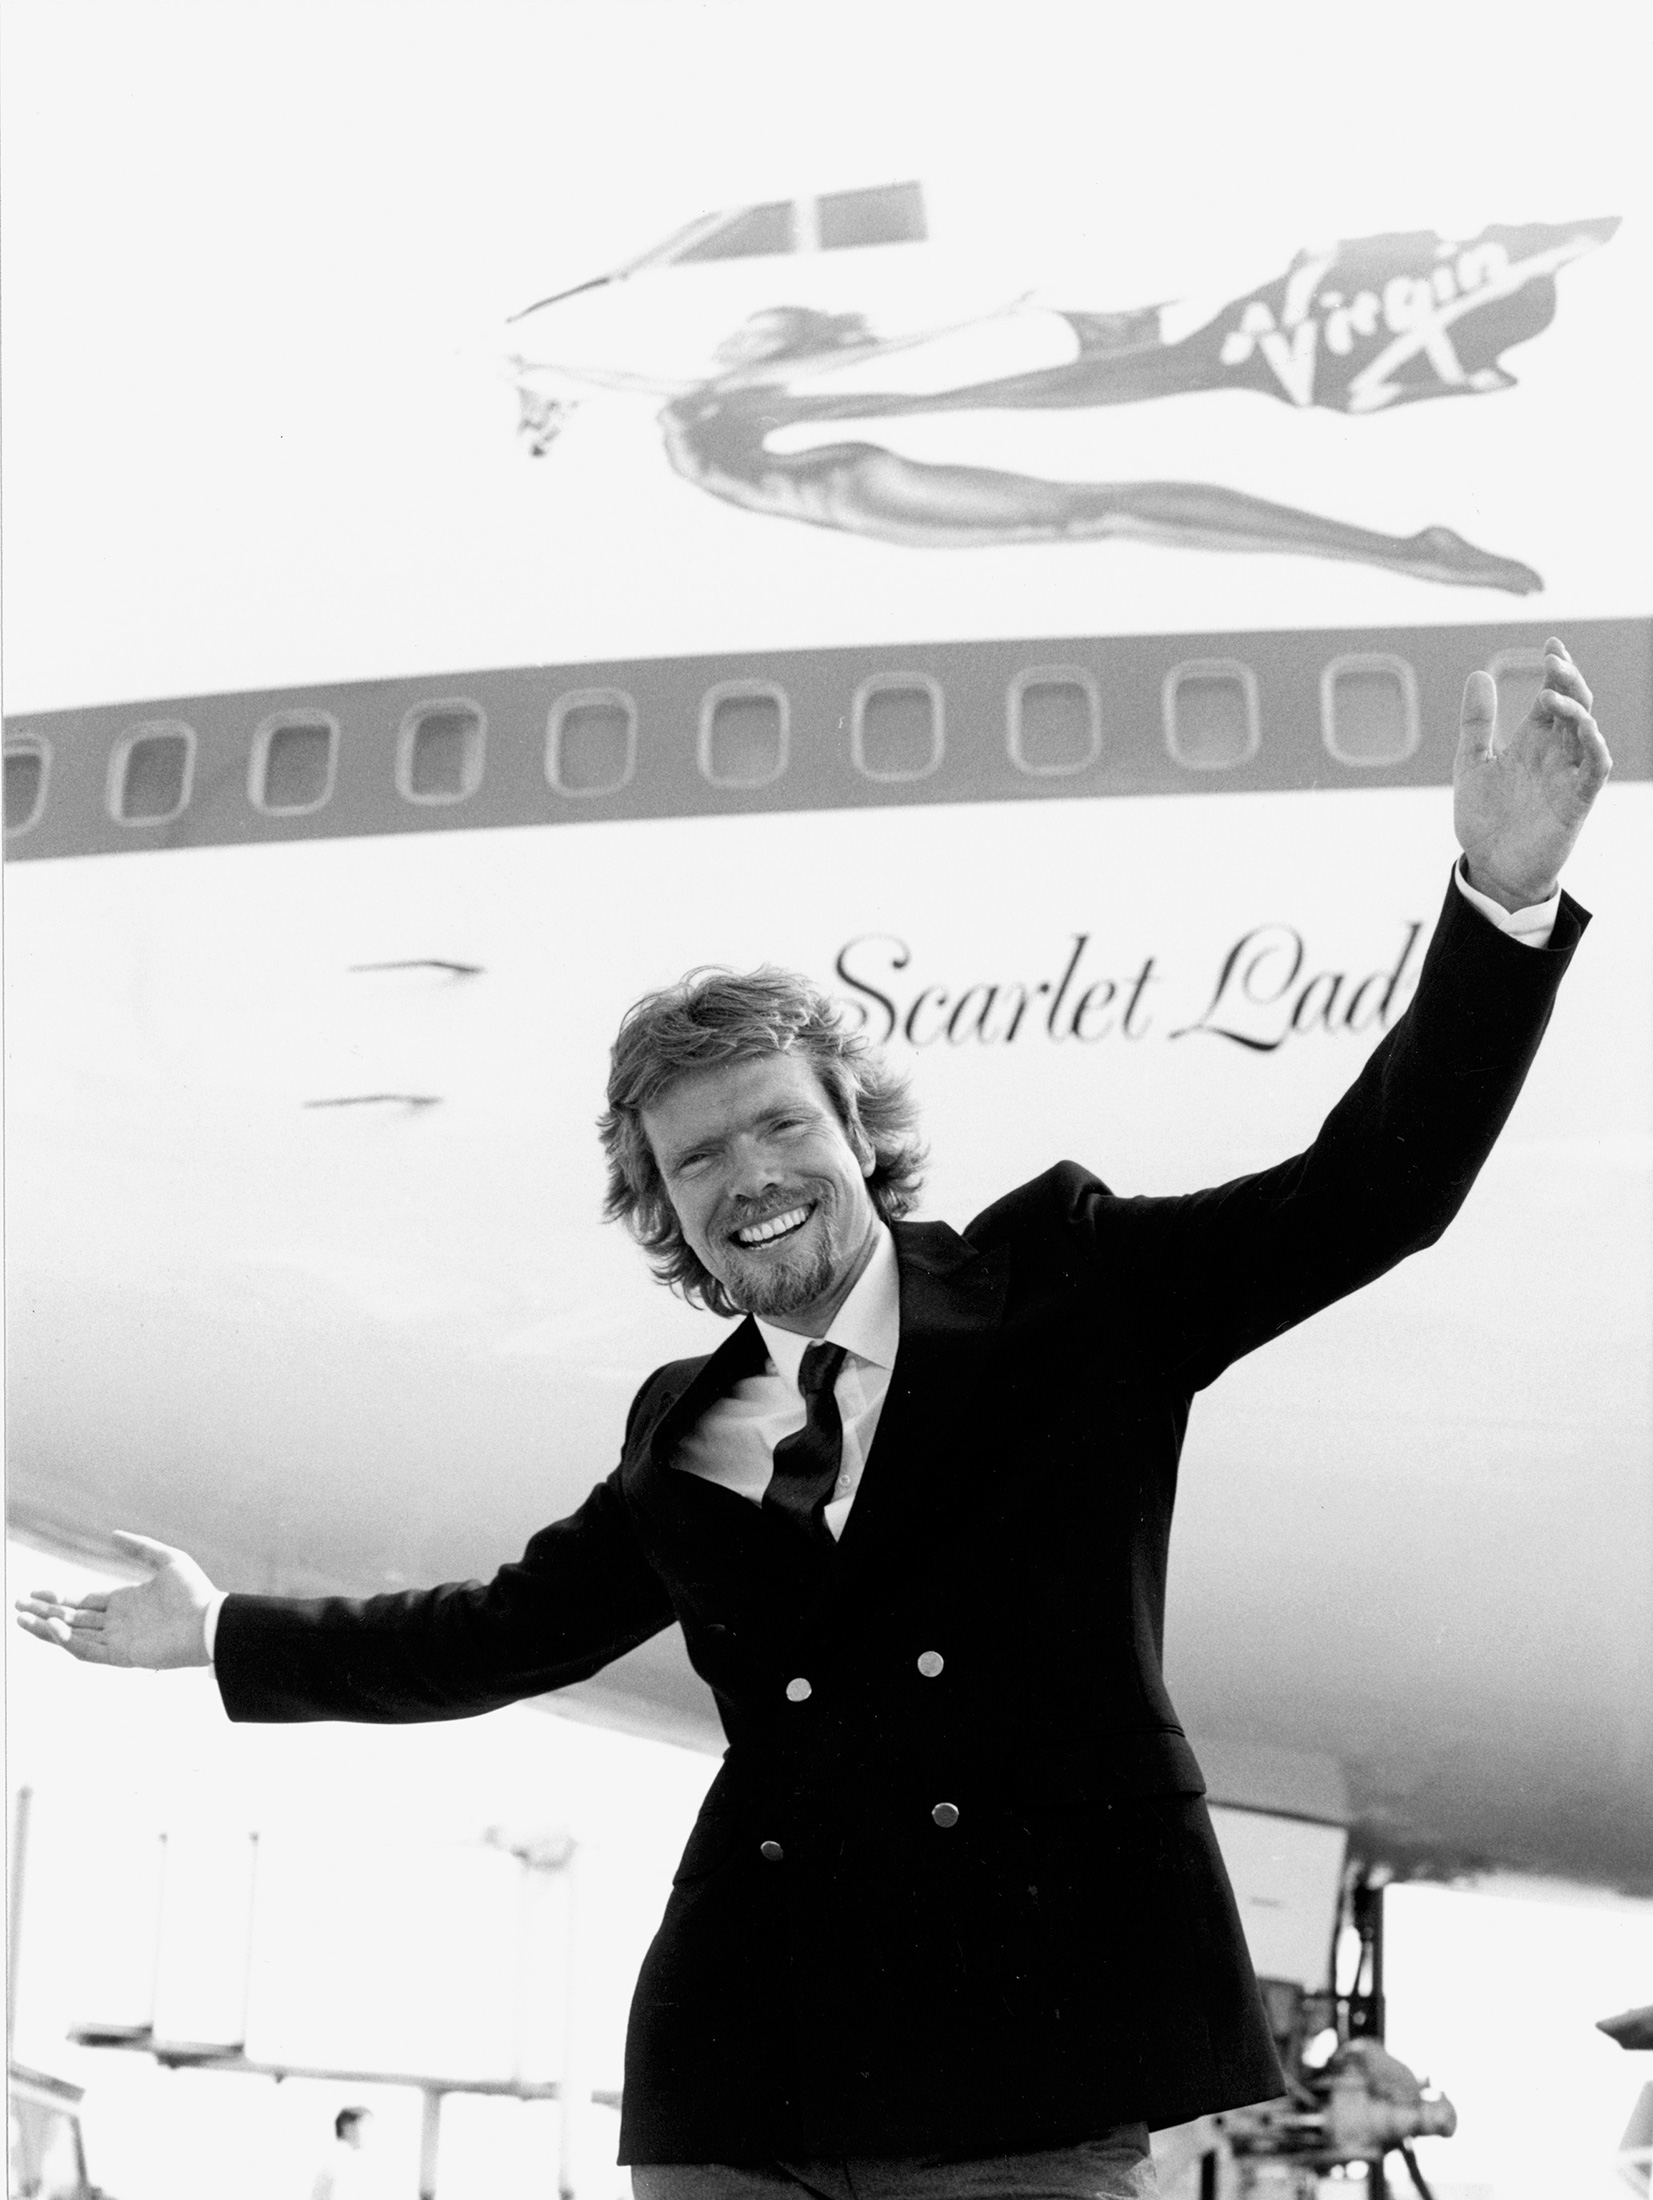 Archival photo of Branson taken during the launch of Virgin Atlantic. (Photo: Courtesy Virgin Atlantic)